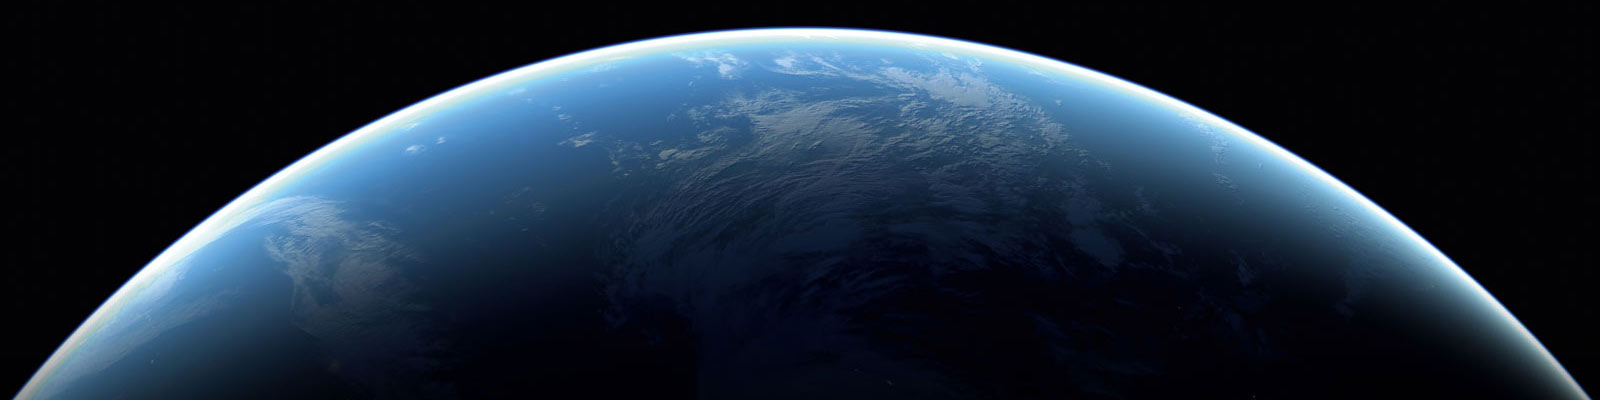 Planet Ocean 600M - Background